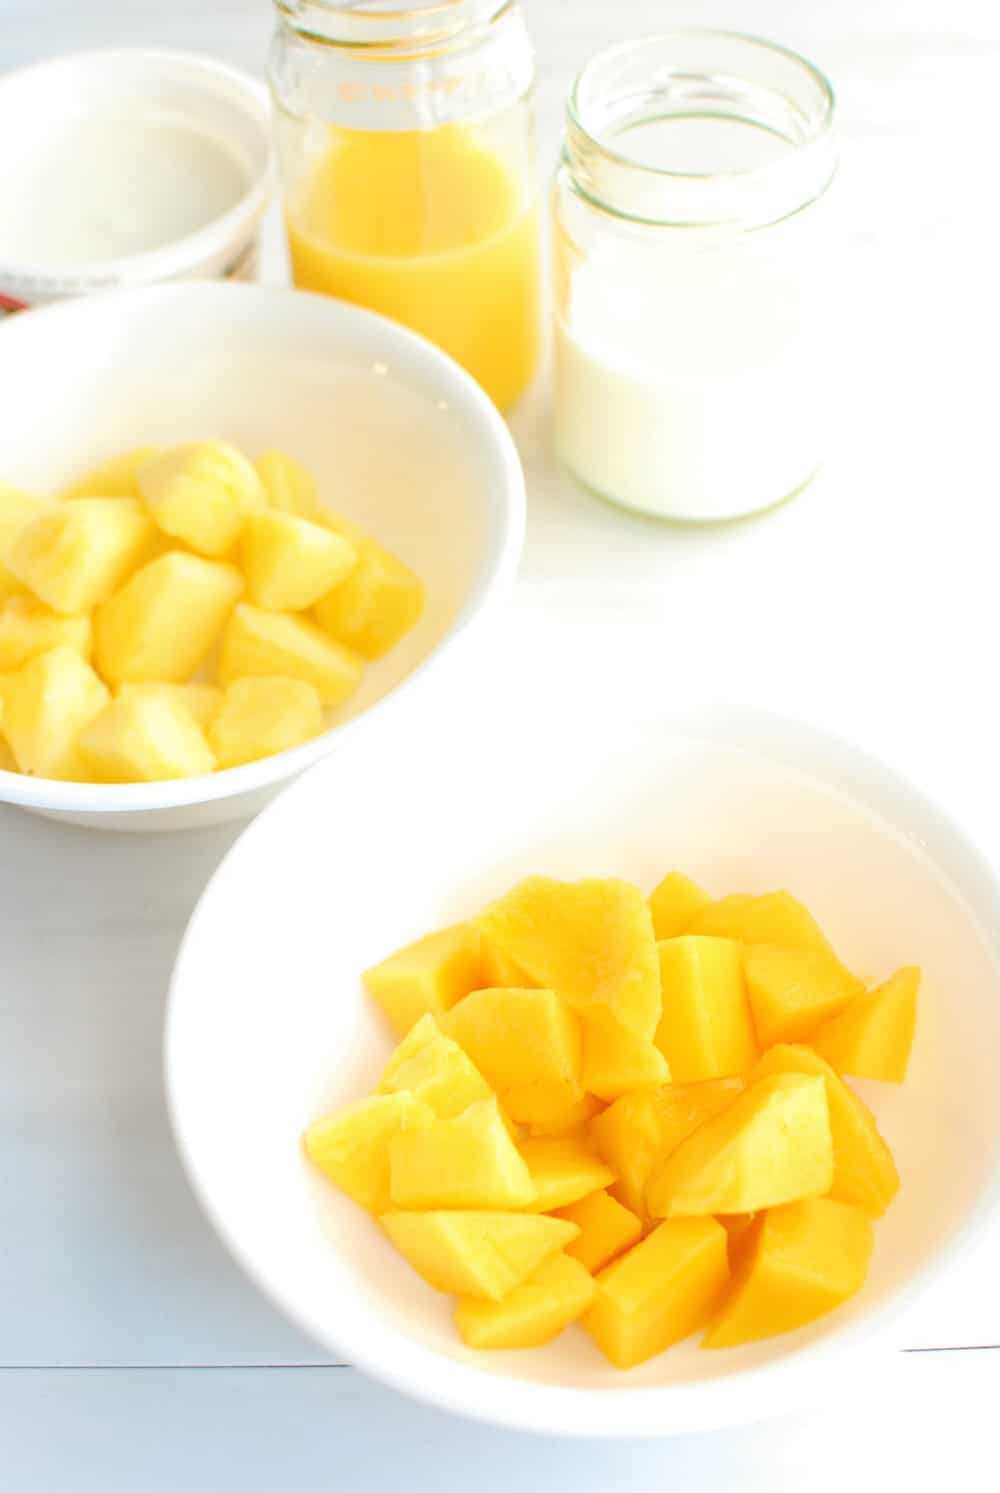 Ingredients to make a mango pineapple smoothie